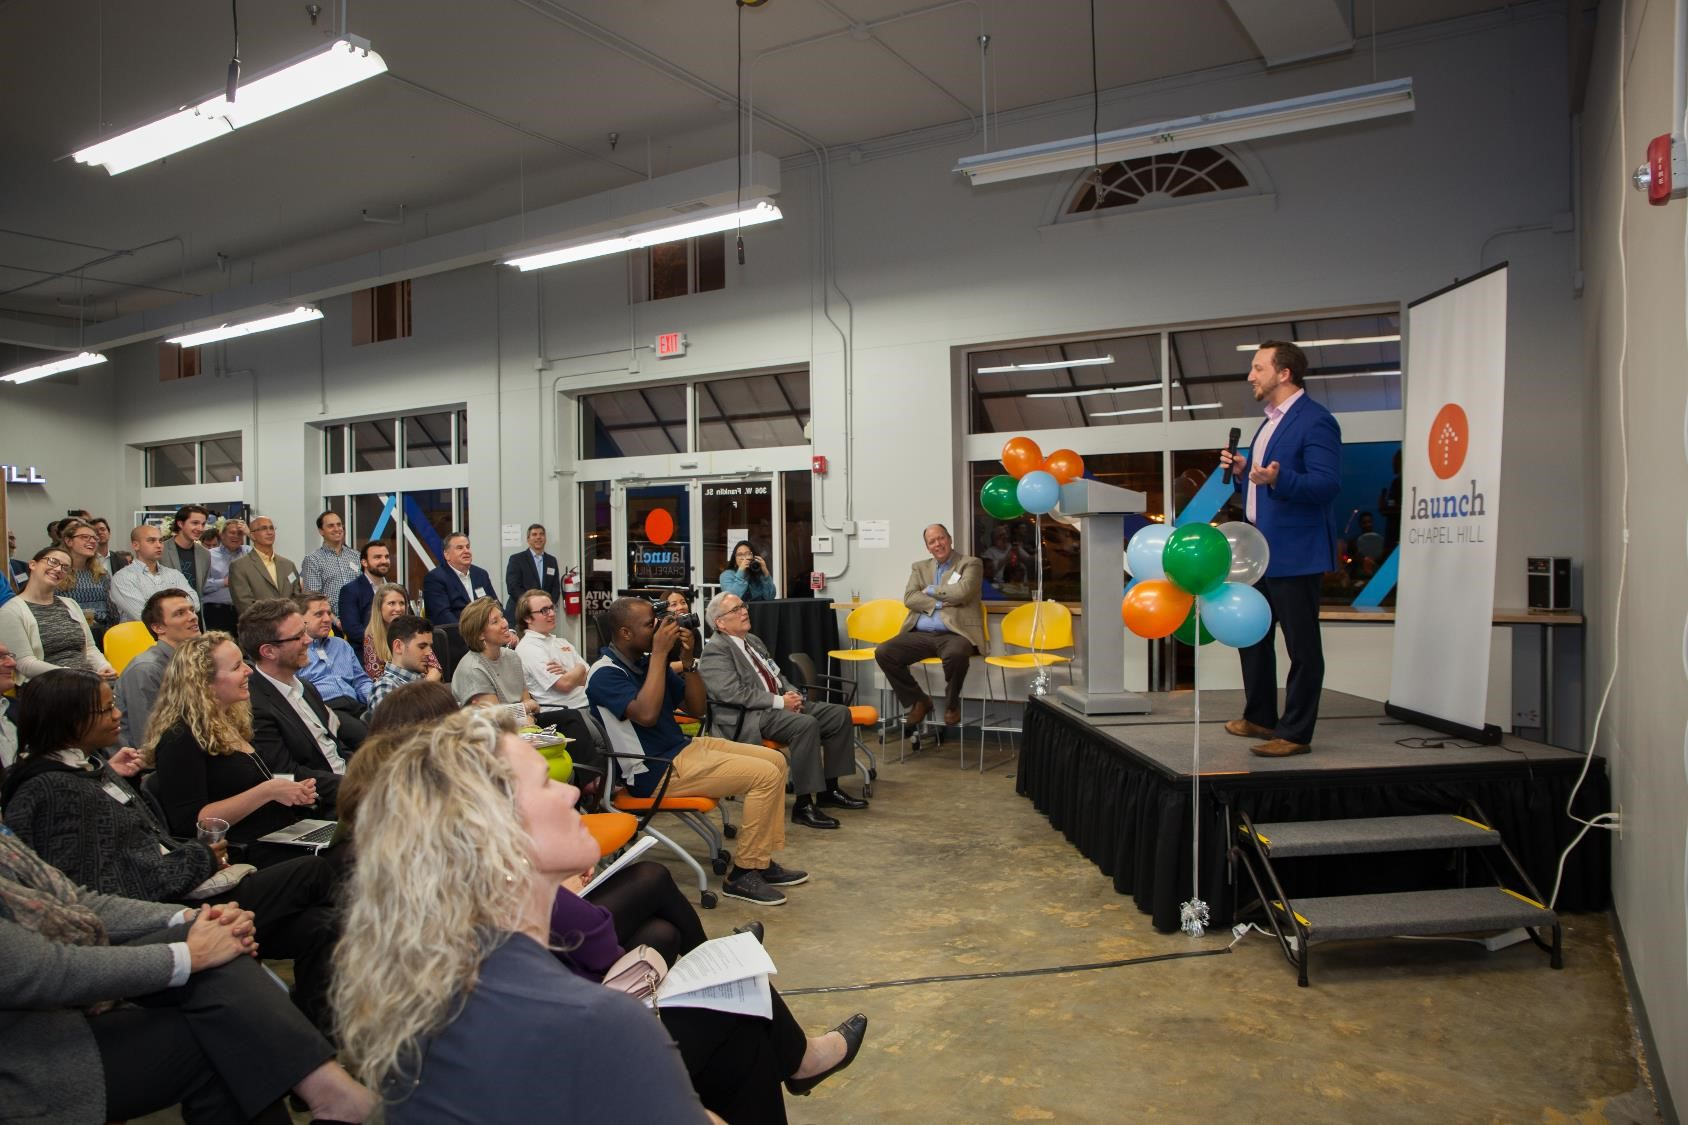 Local officials, university leaders, area entrepreneurs and residents gather for a celebration of Launch Chapel Hill's first five years of supporting startups in Chapel Hill and Orange County.